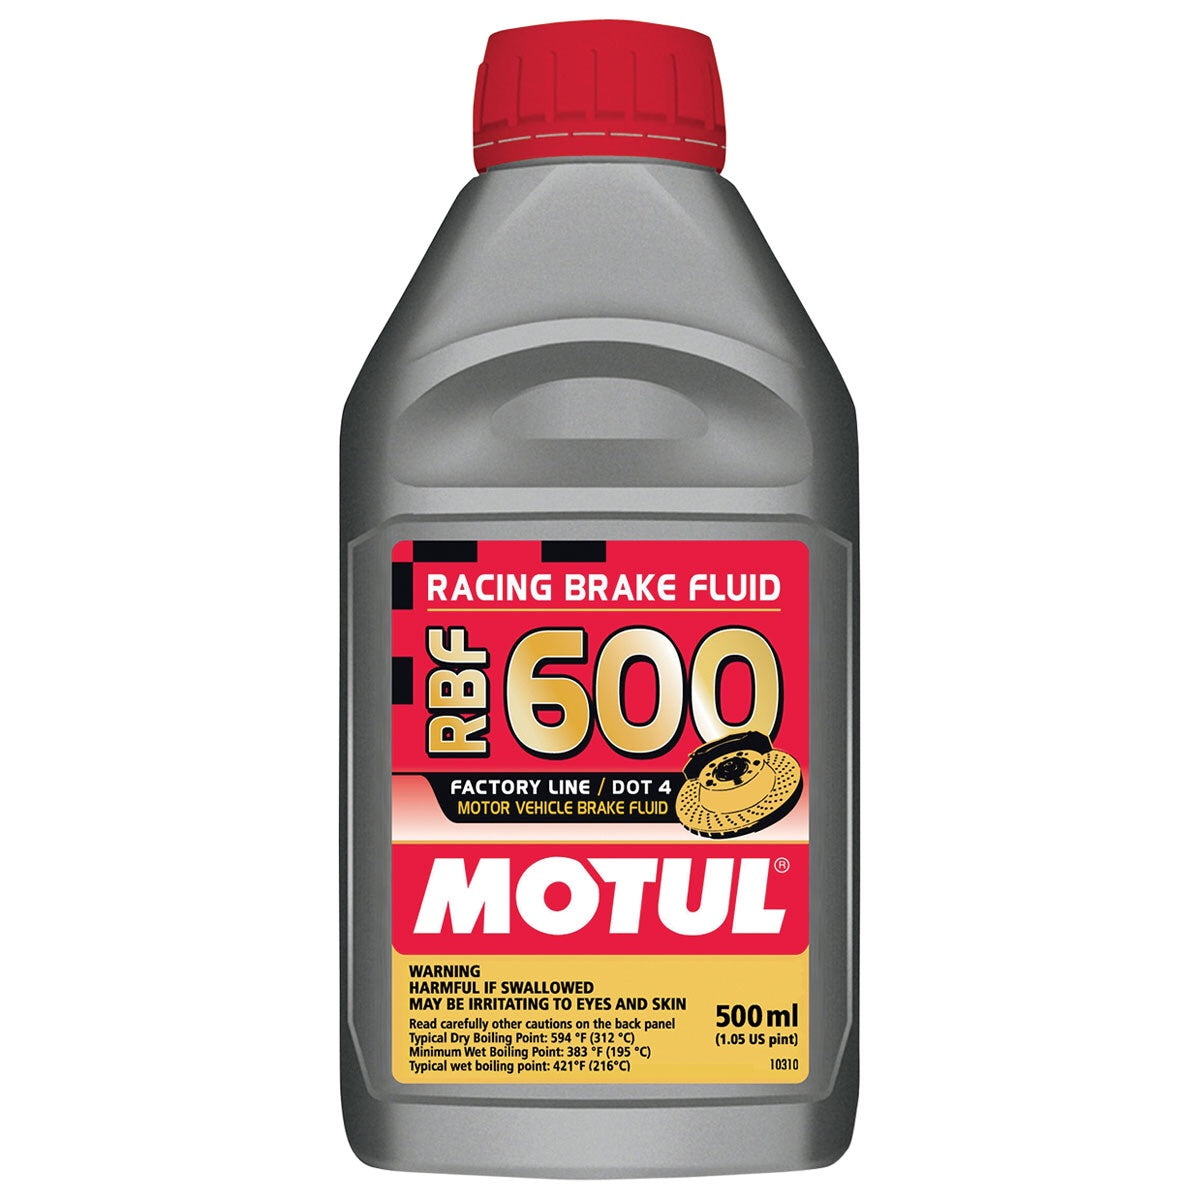 Motul RBF 600 DOT 4 Brake Fluid